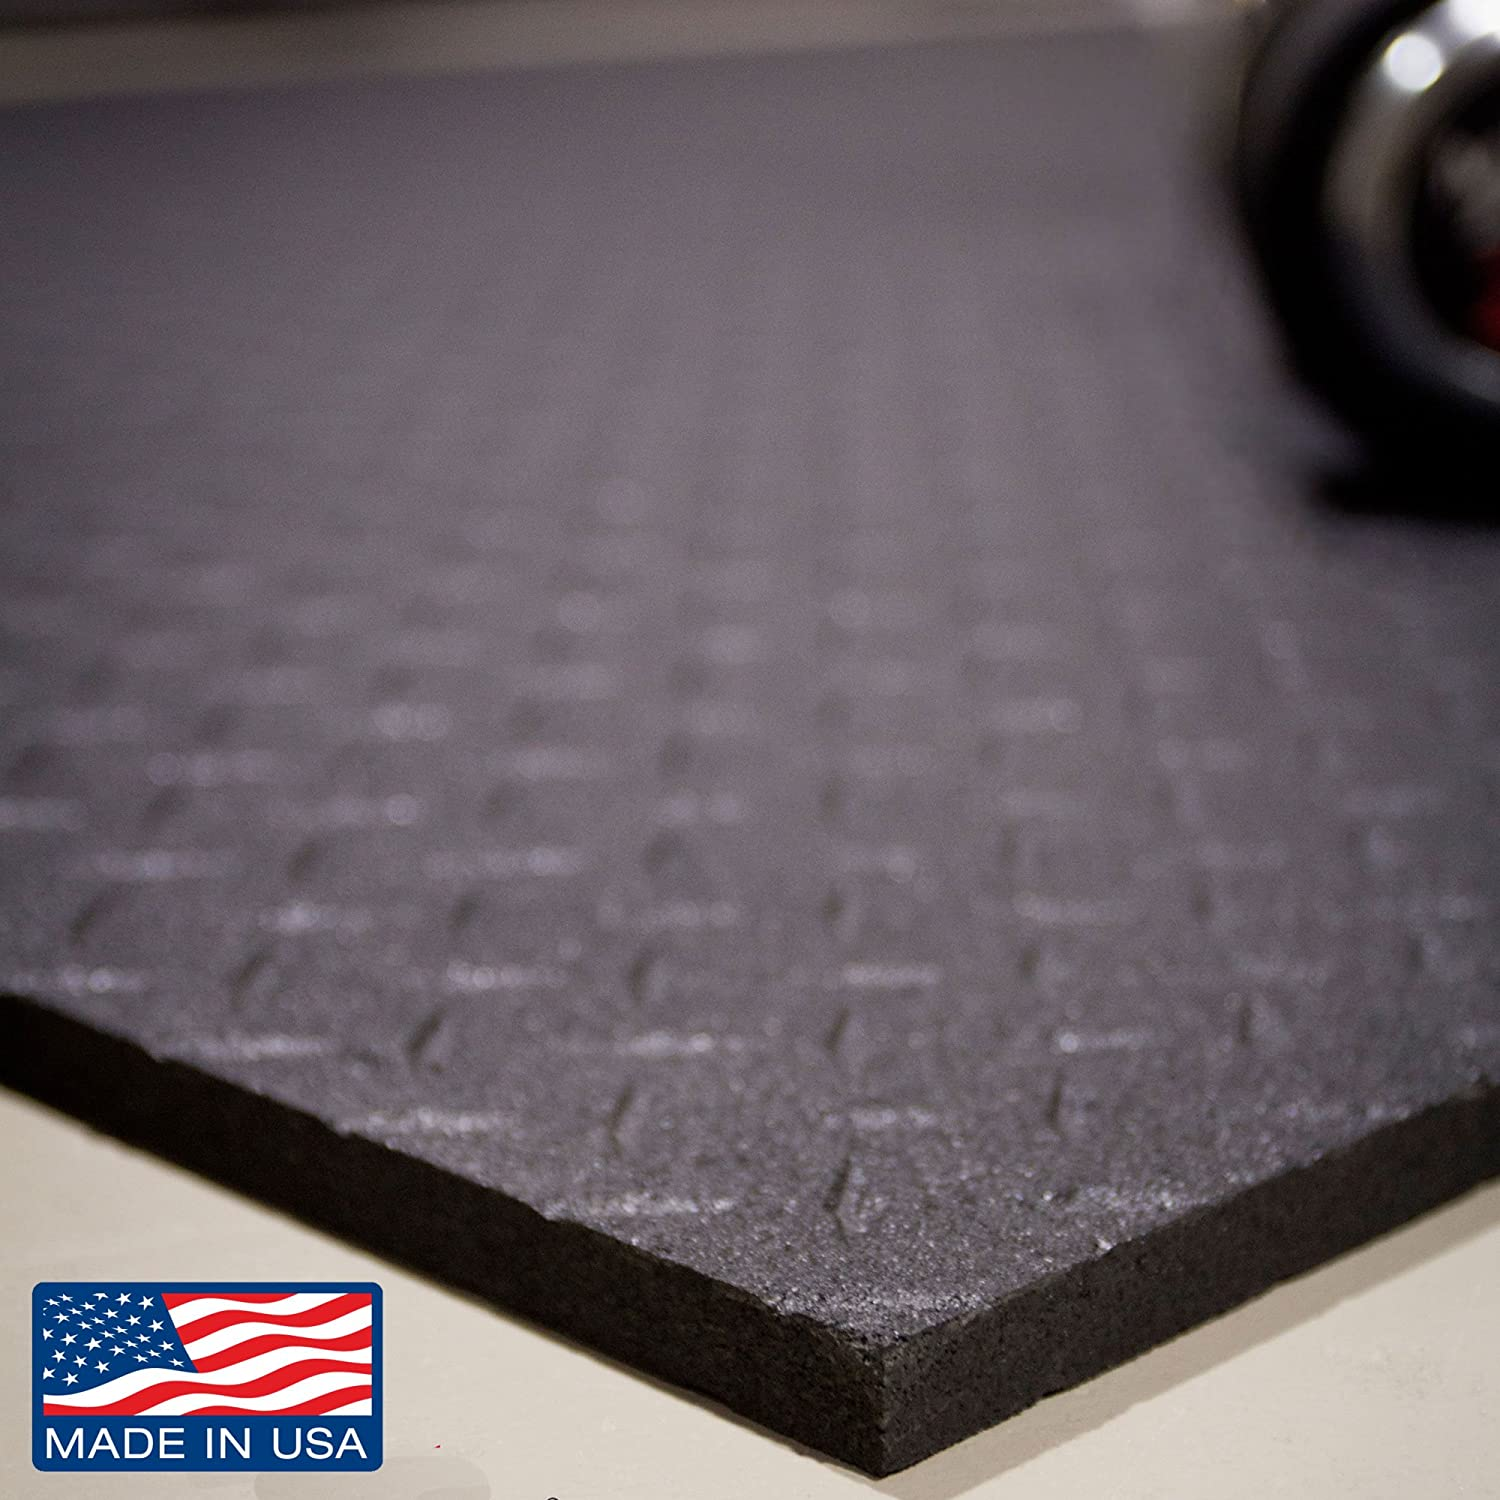 Best workout mats for garage eoua